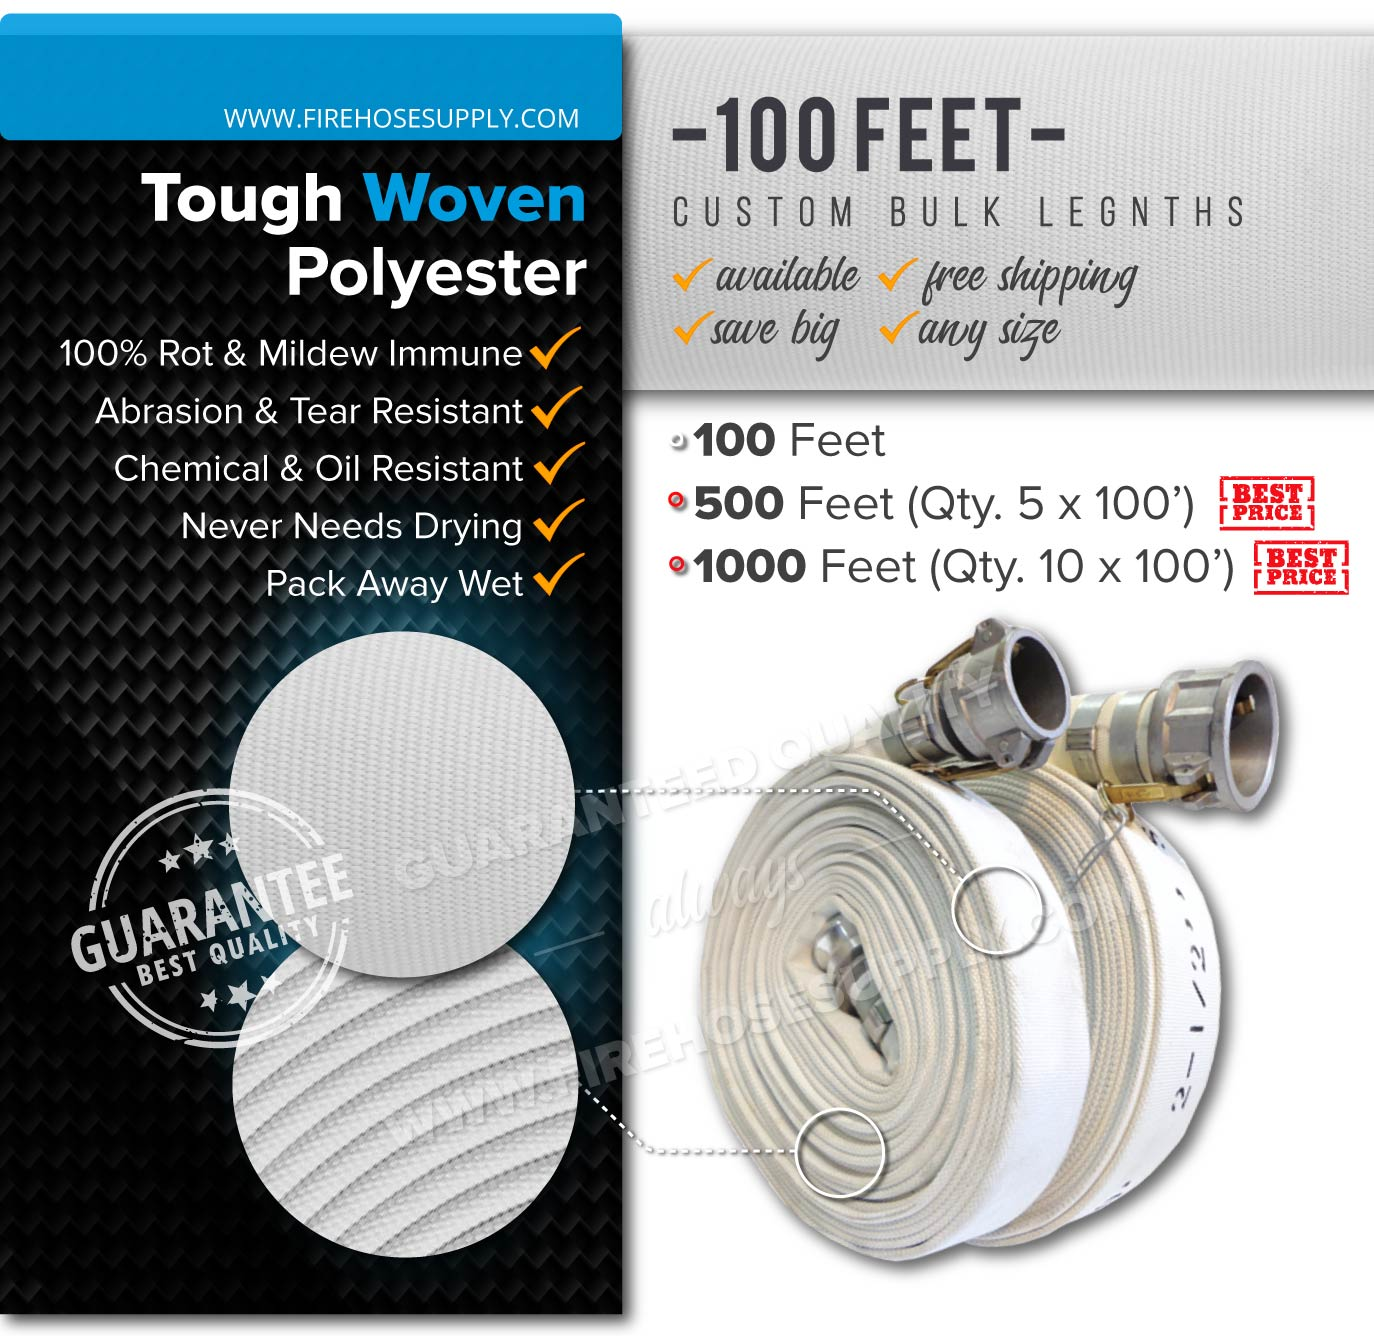 1.5 inch 100 feet camlock quick connect hose polyester bulk wholesale 1000 feet